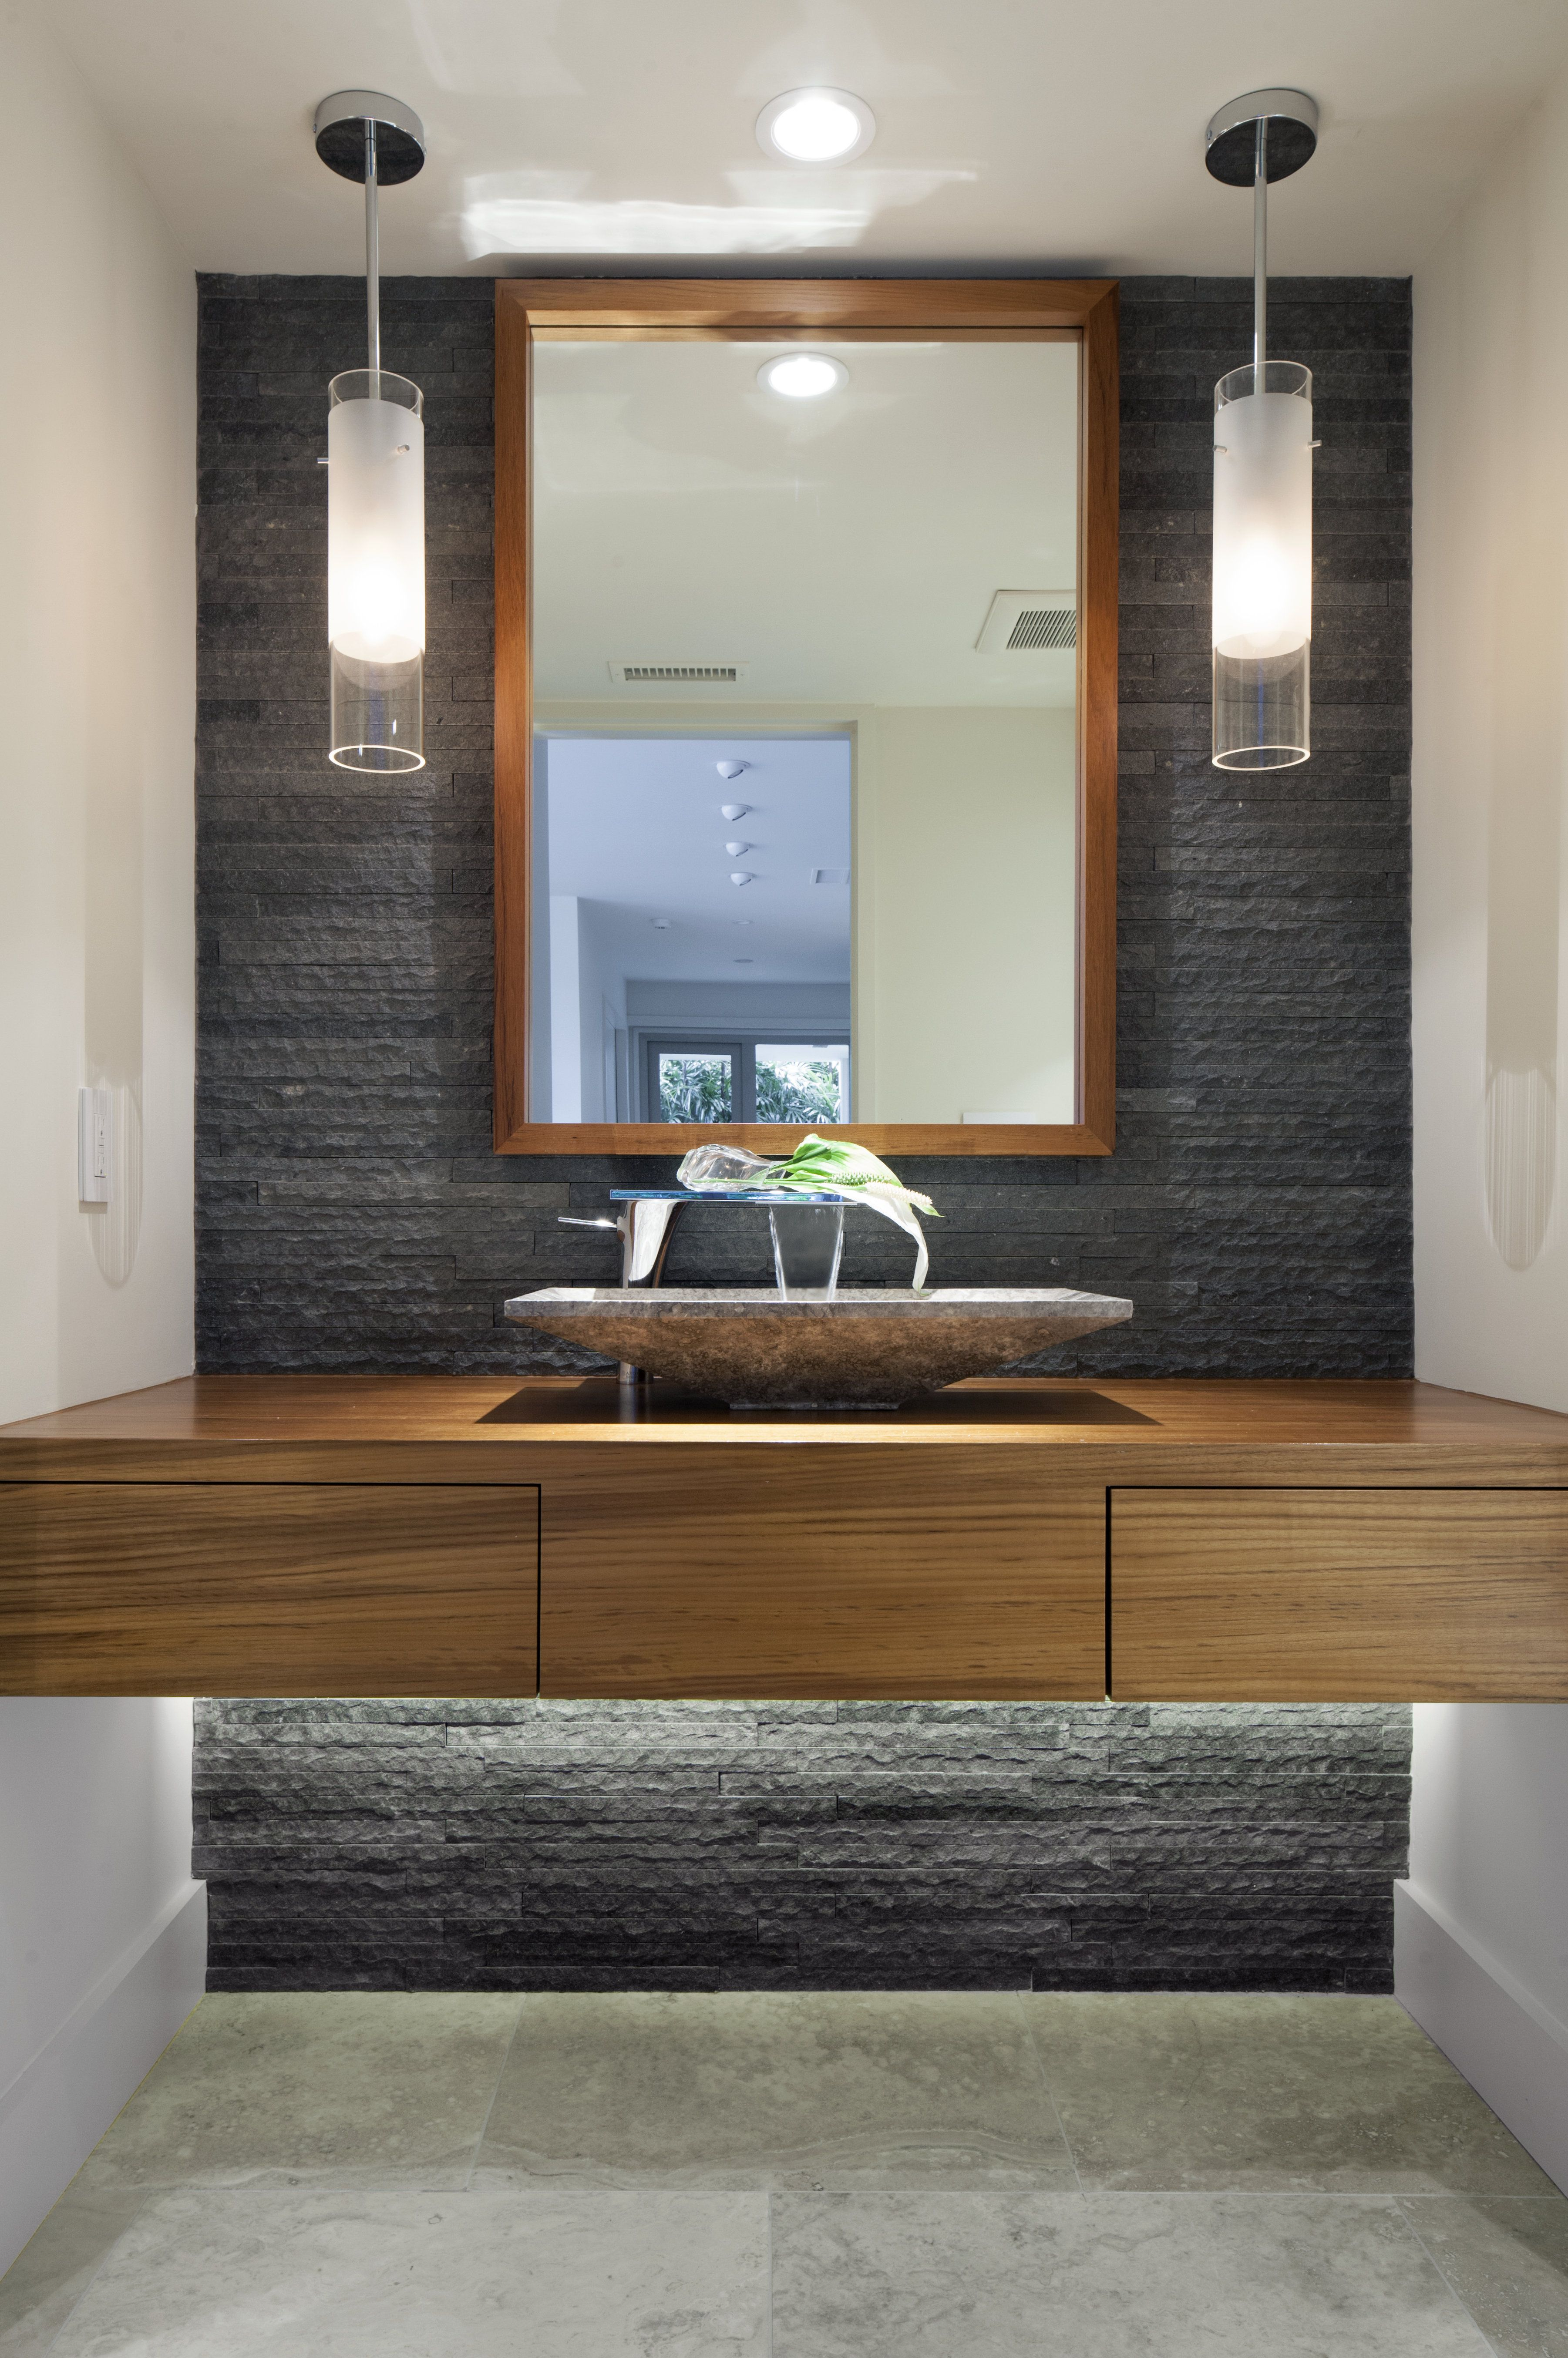 A modern bathroom with natural stone accent wall and pendant lights